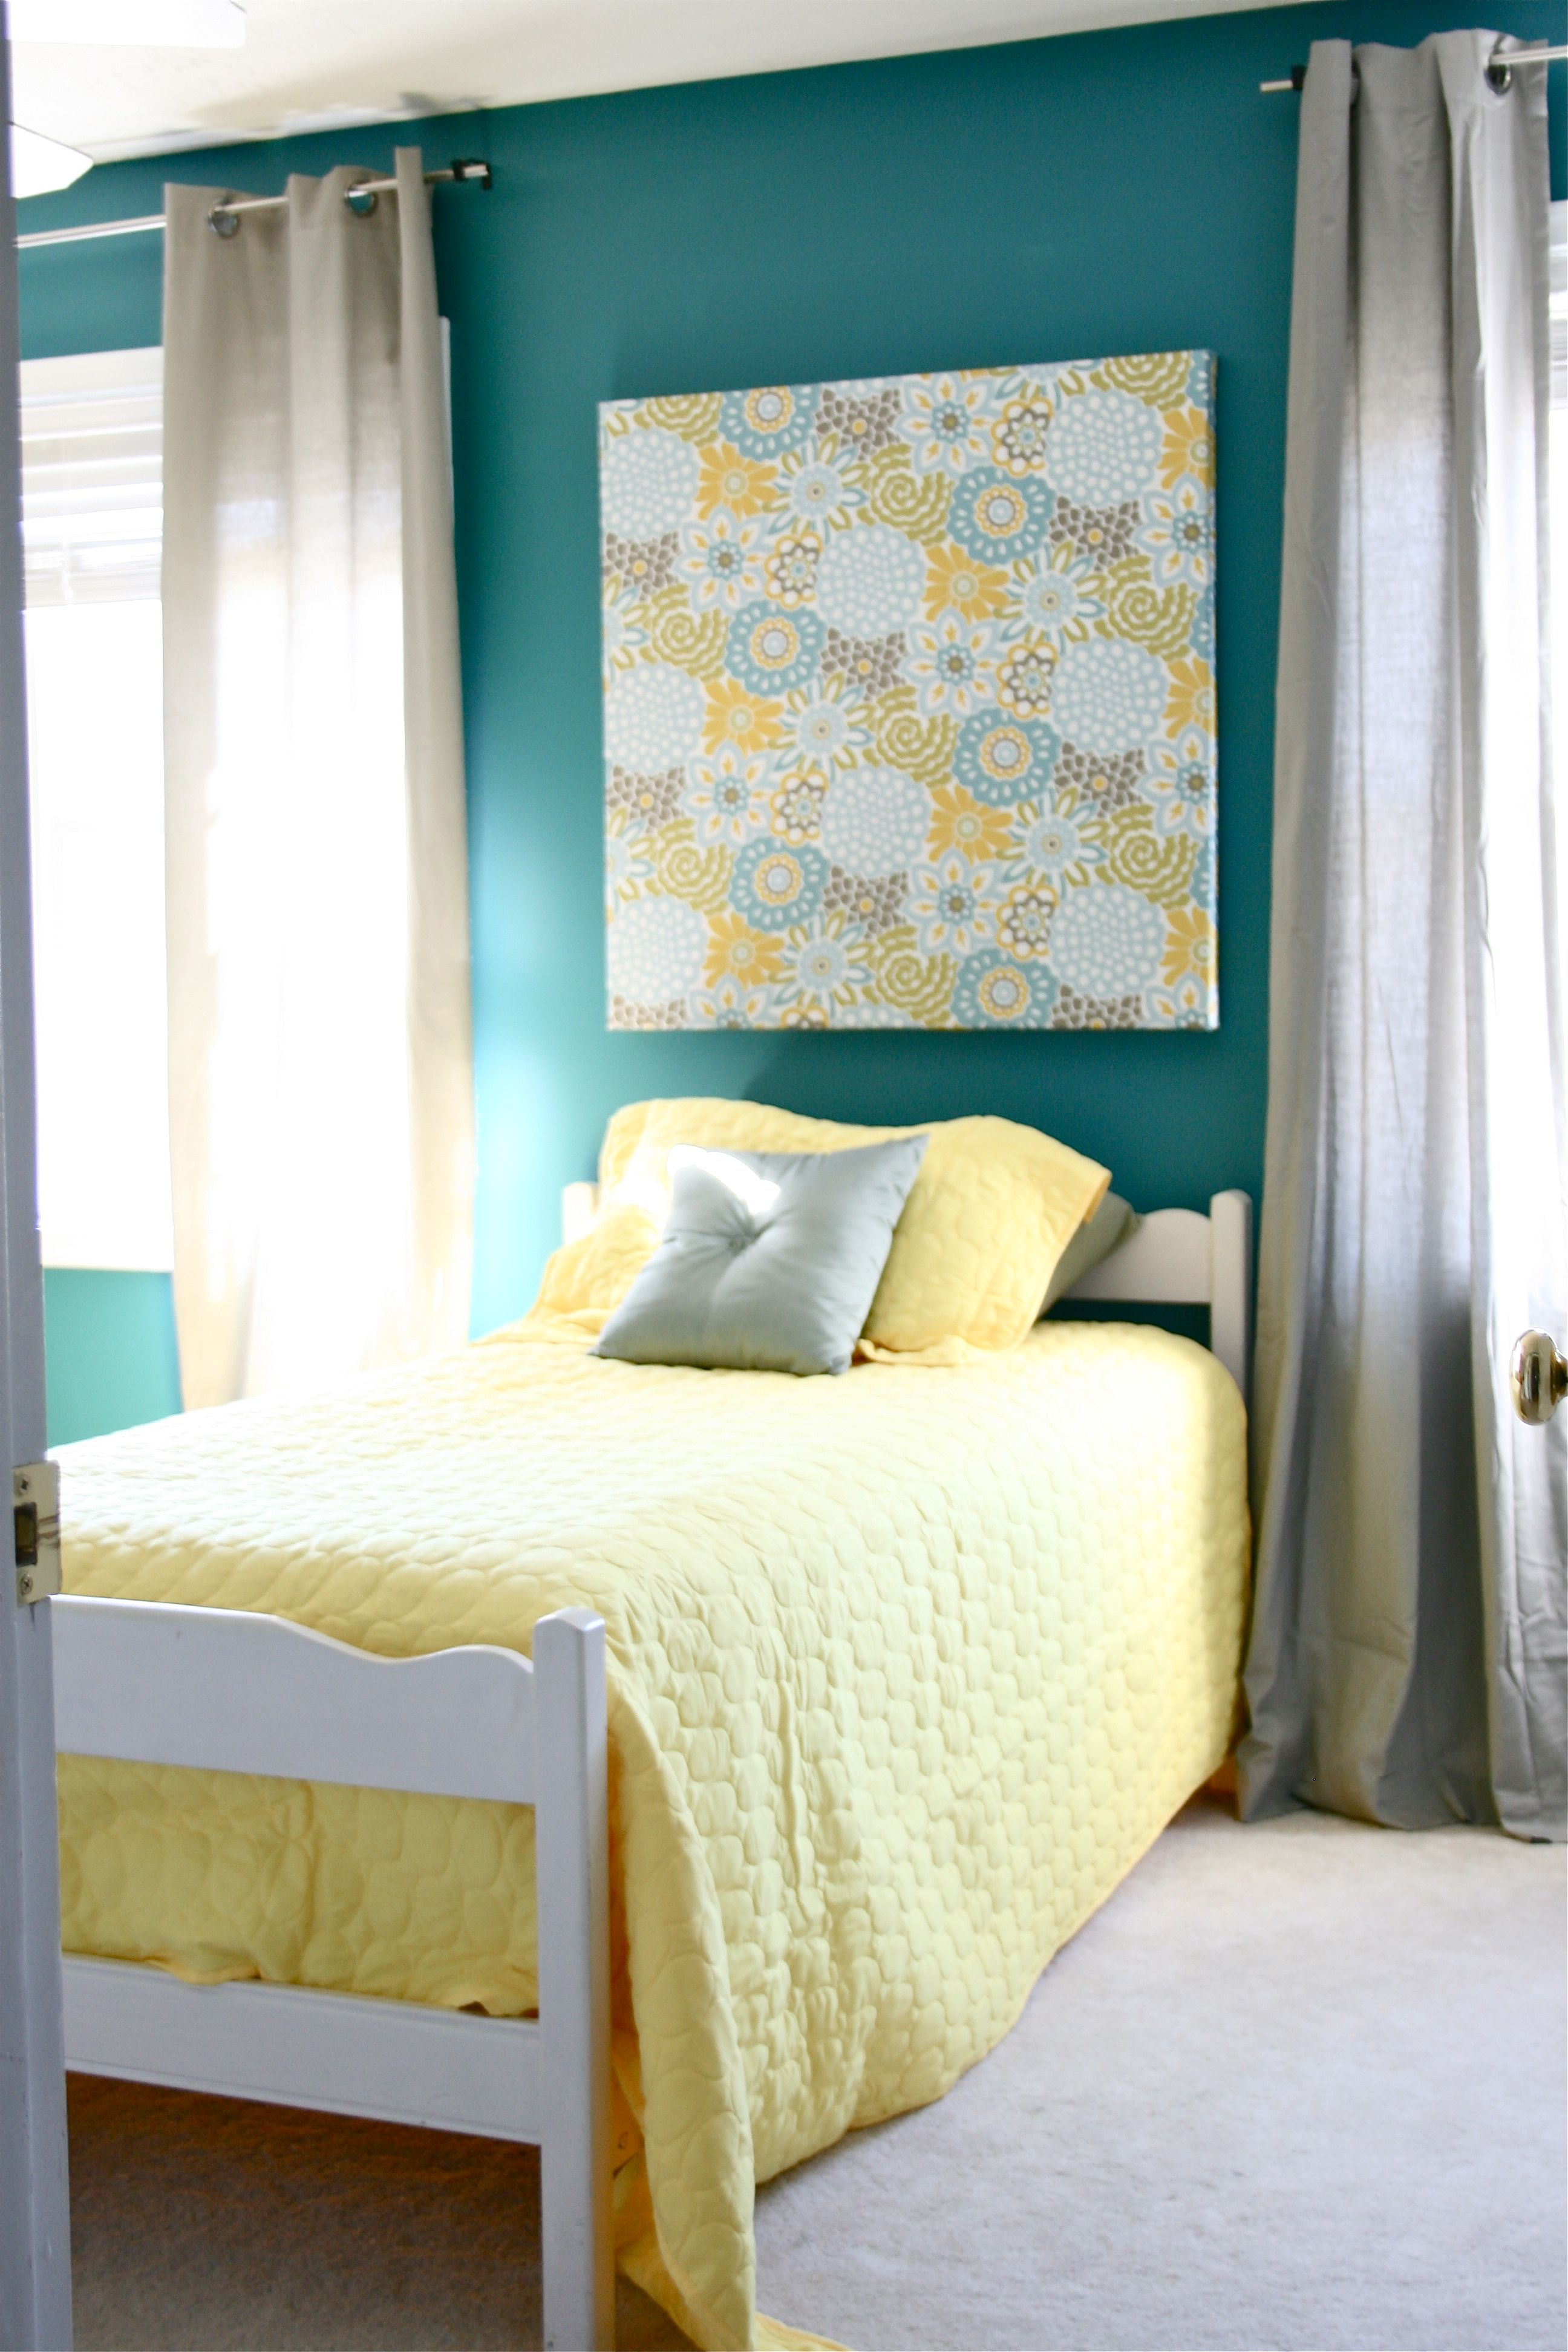 Teal And Yellow Bedroom Pinspiration Monday Brass Bed Dream Green Diy